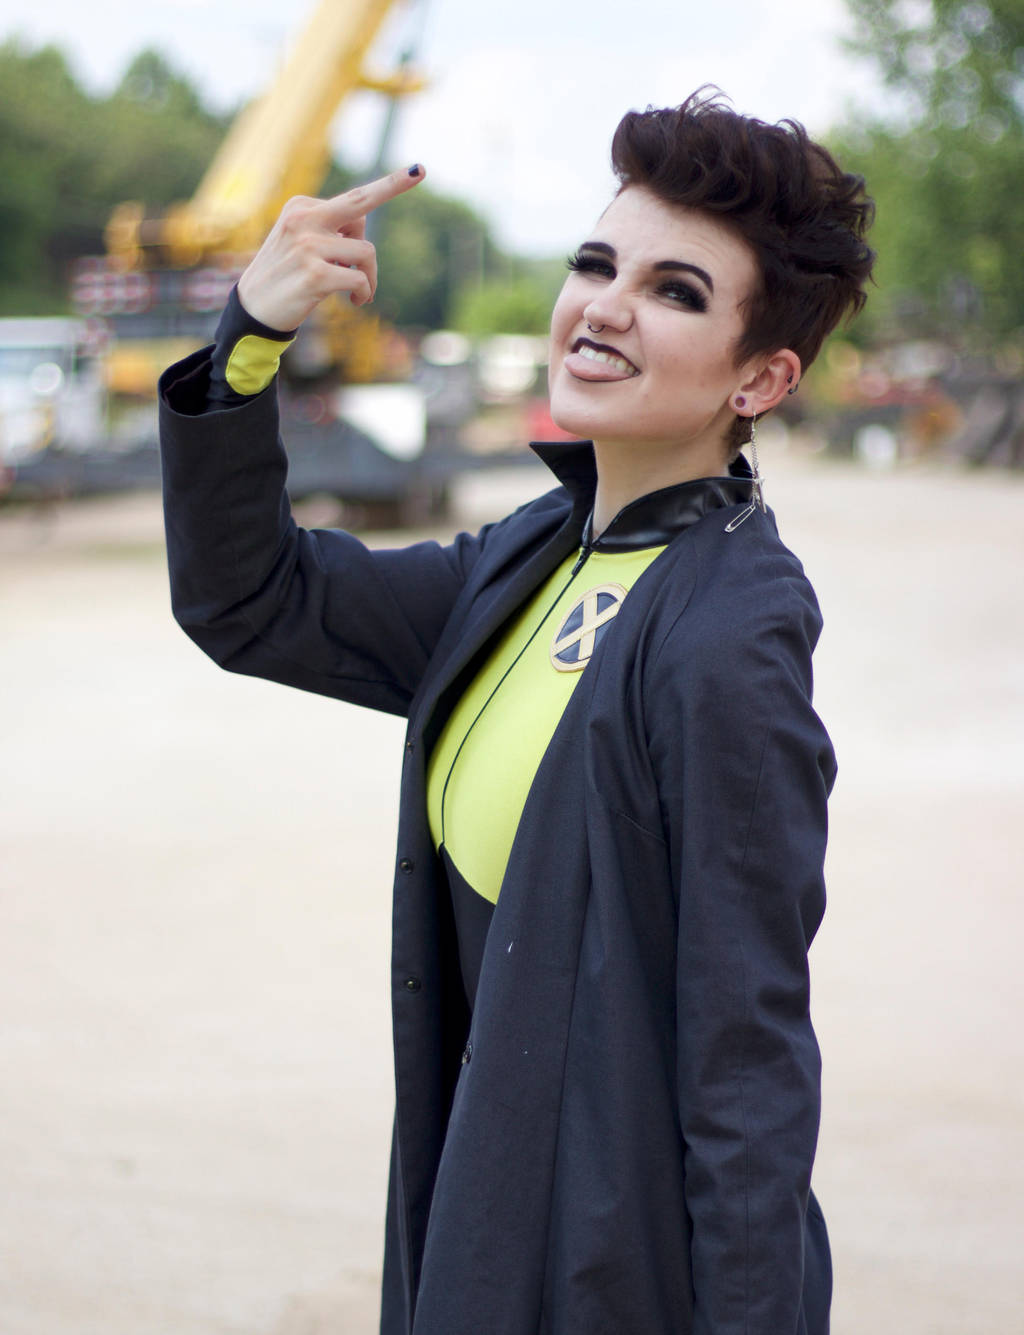 Negasonic Teenage Warhead Cosplay 2 by mblackburn